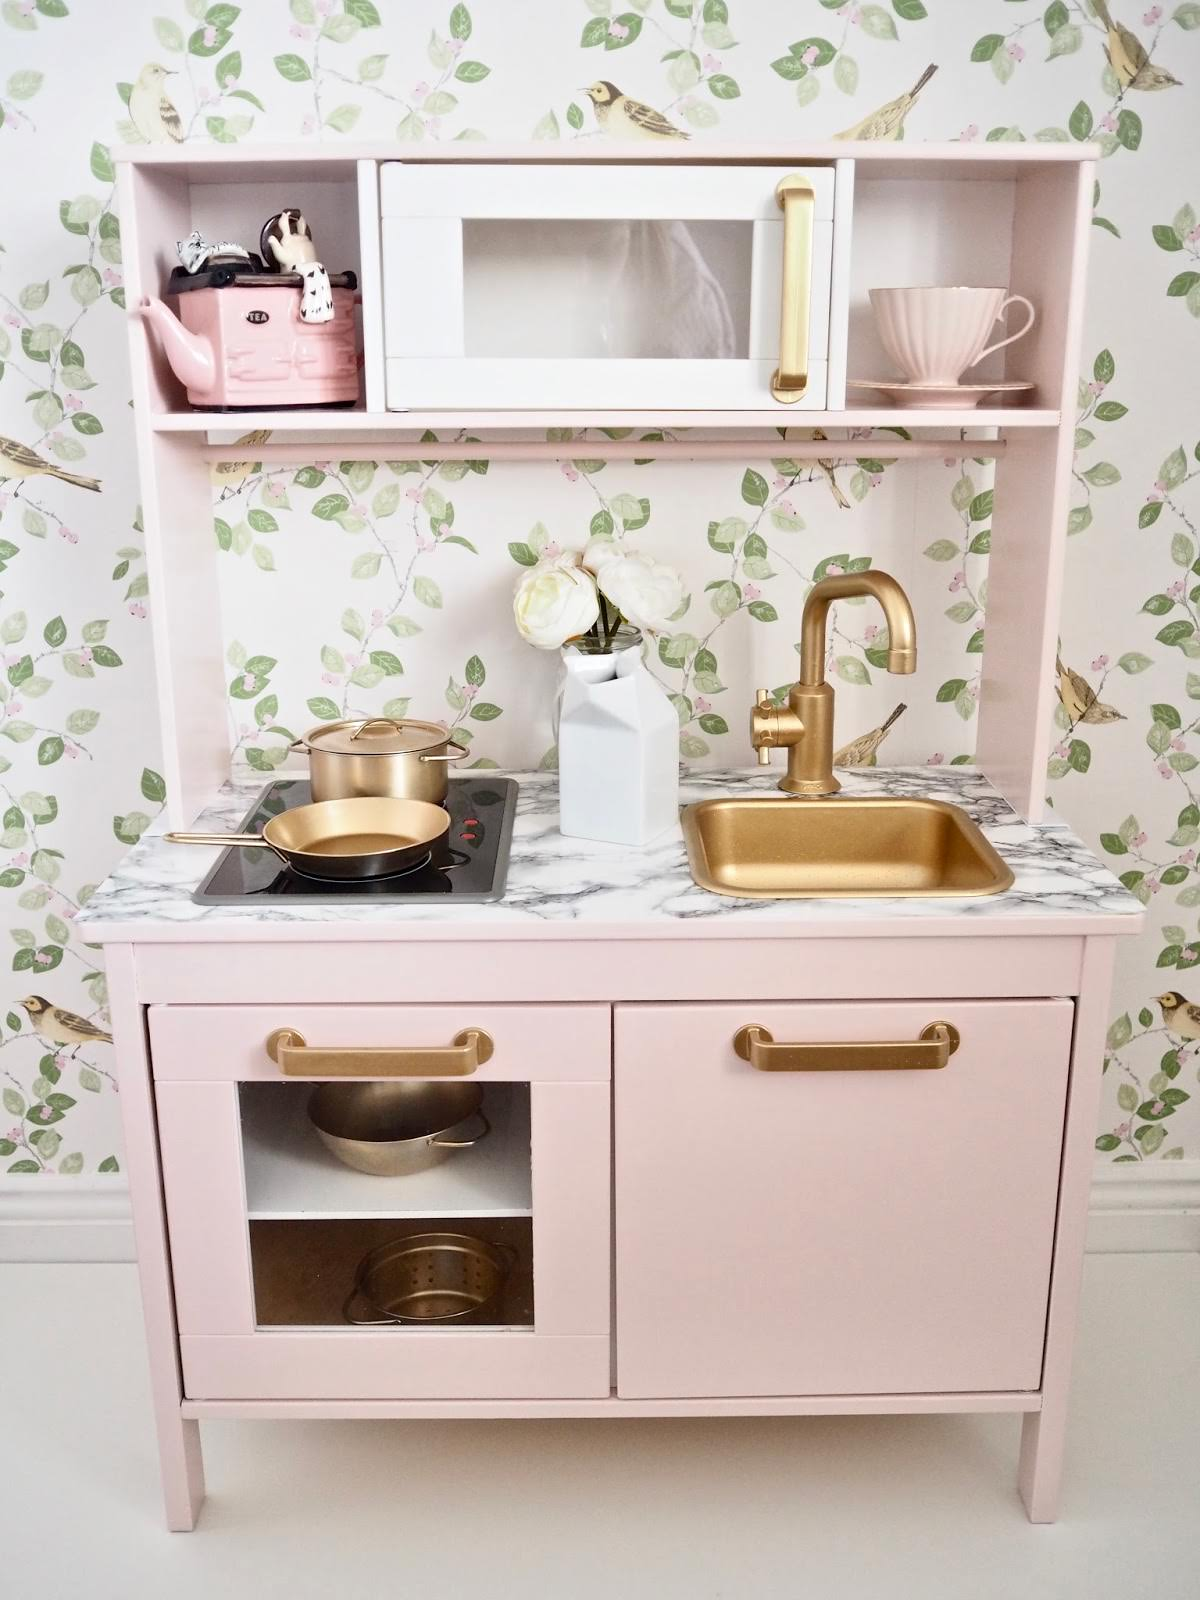 The Best Ikea Play Kitchen Hacks And How To Recreate Them The Best Ikea Play Kitchen Hacks {and How To Recreate Them}